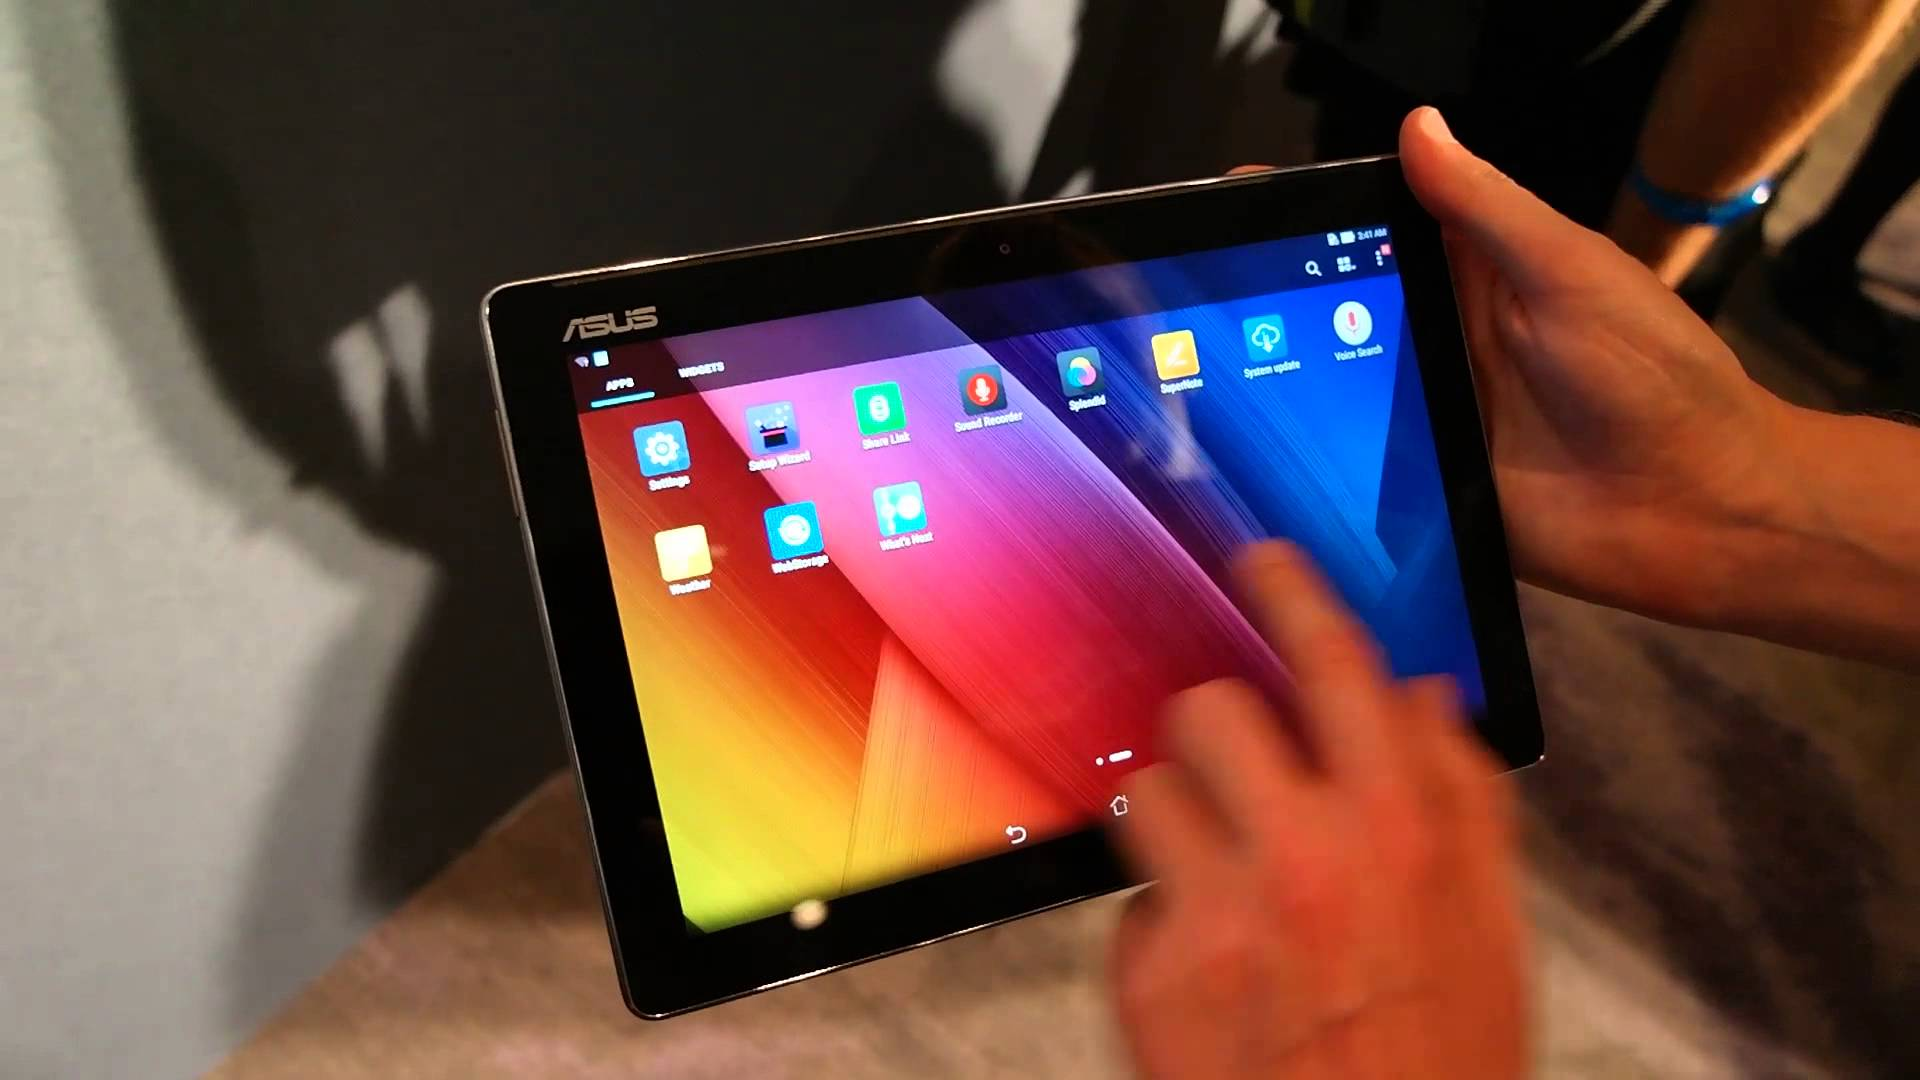 Computex Event 2017: ASUS ZenPad 10 tablet unveils with 4,650mAh battery; check features and more